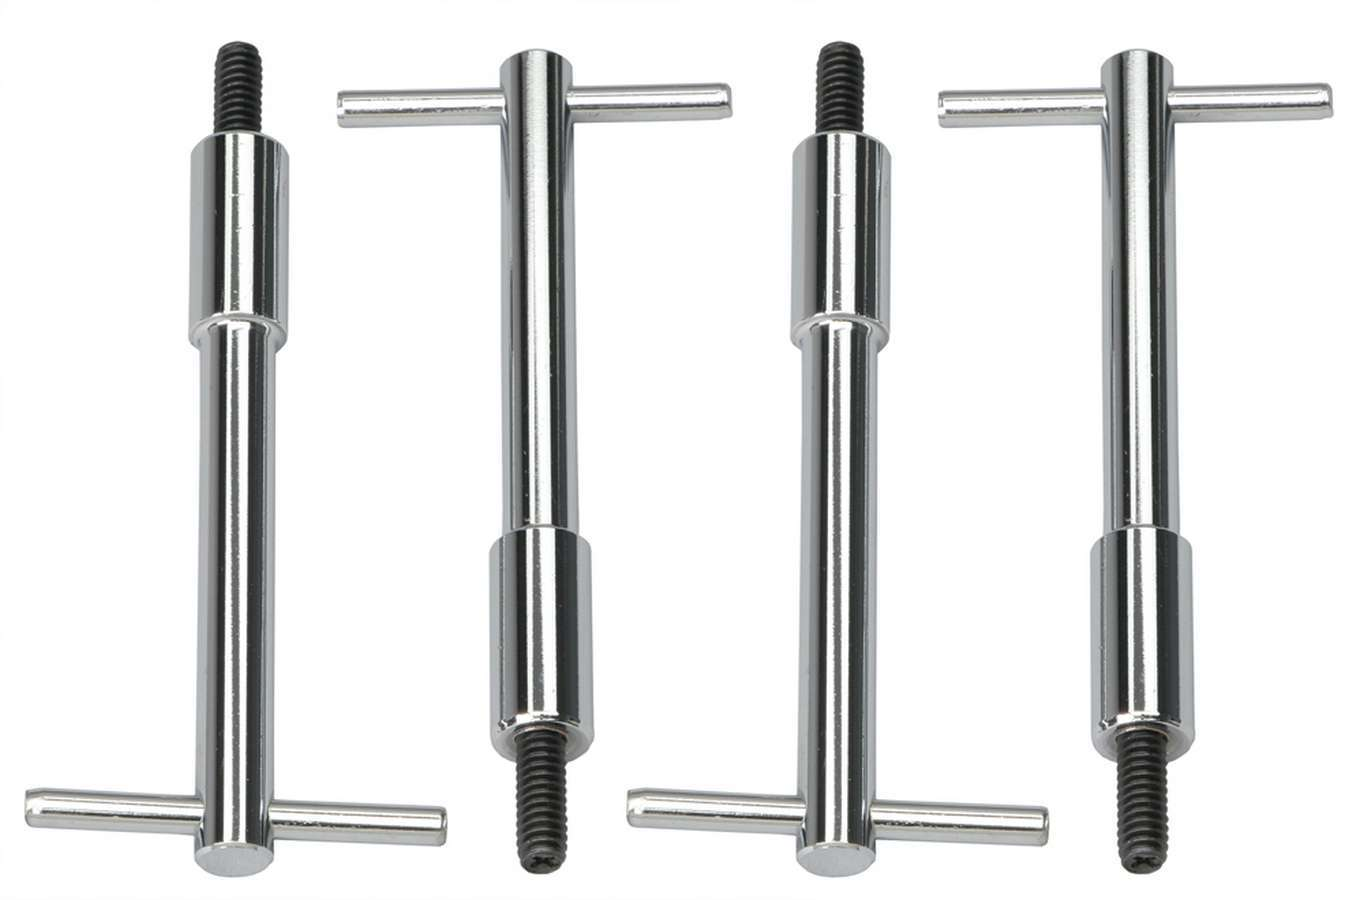 Billet Specialties 95012 Ribbed Style Valve Cover Bolt Pack of 4